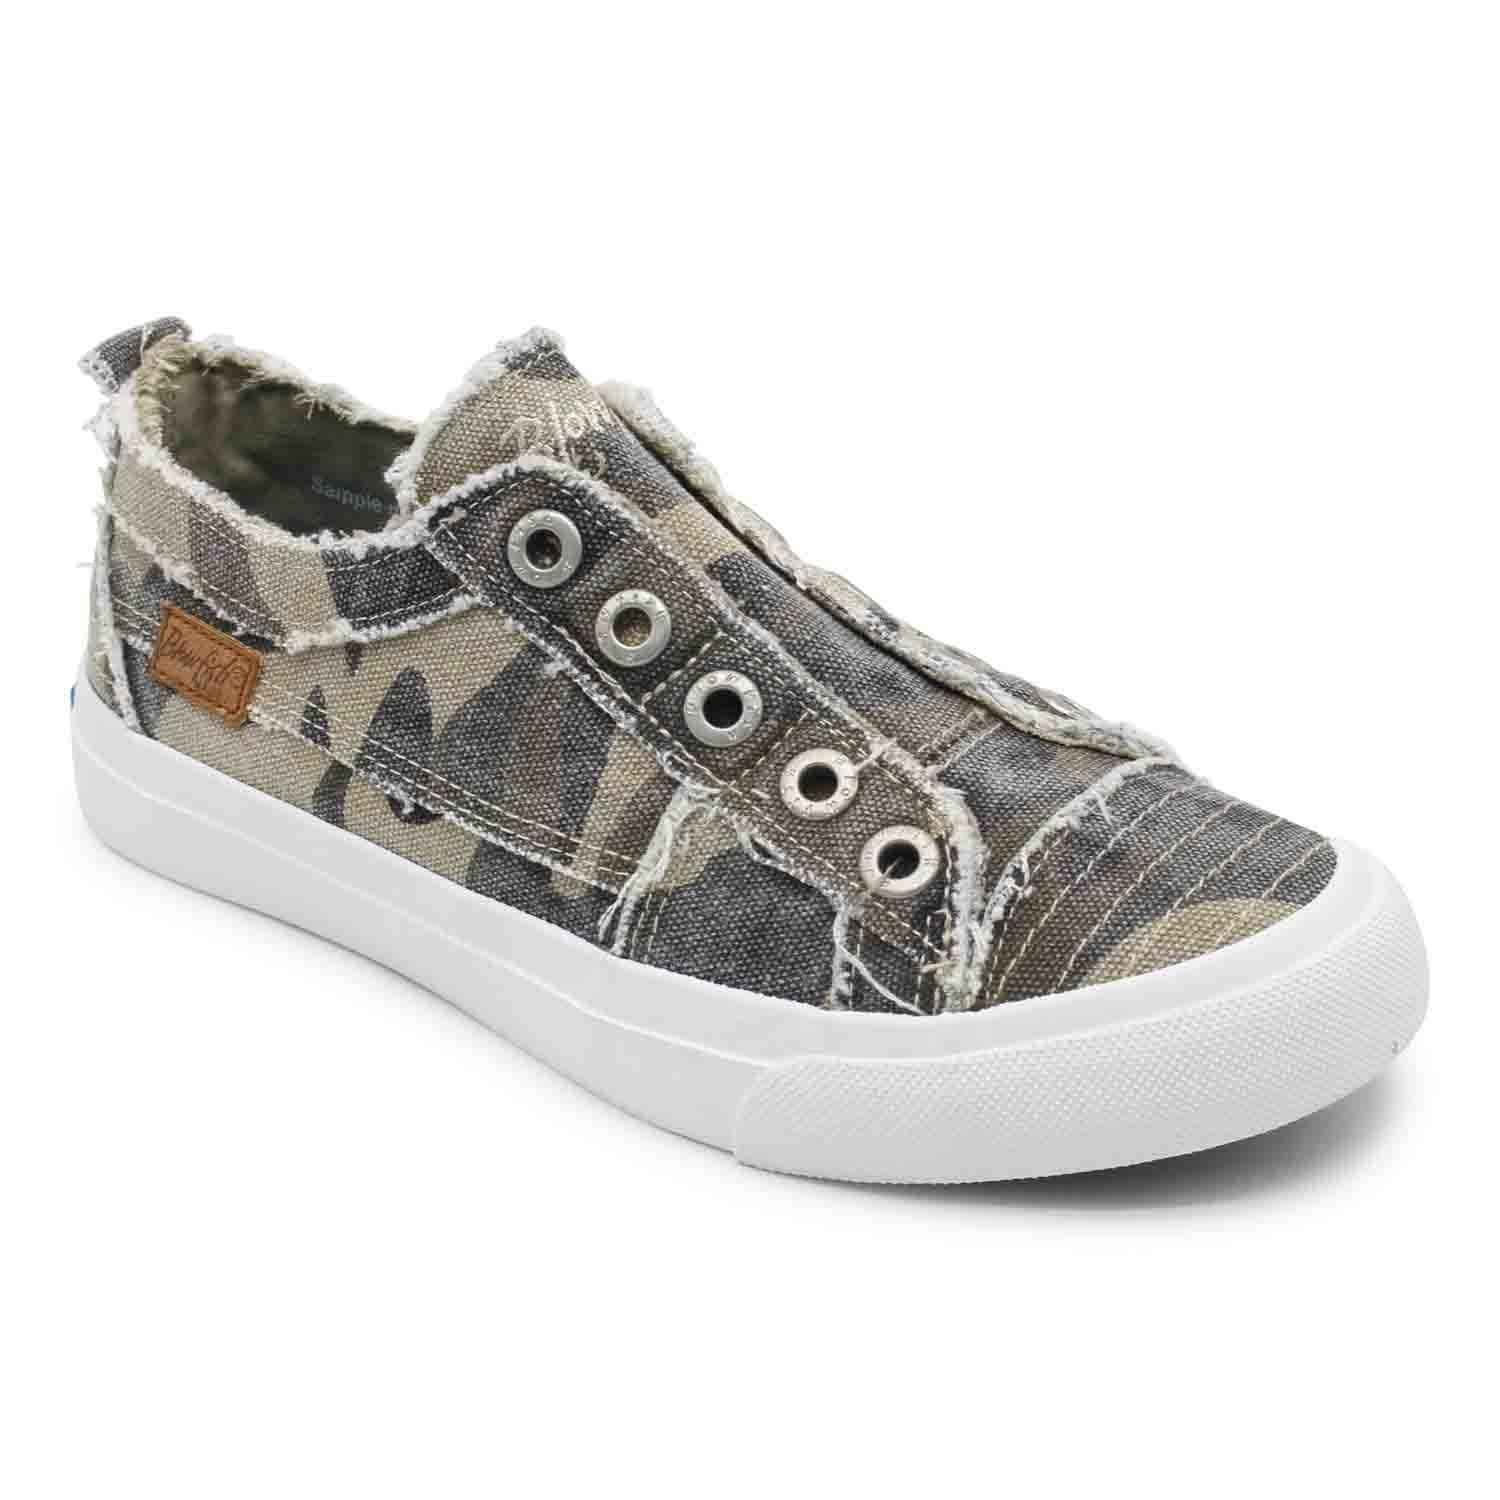 Blowfish Women's Play Slip on Sneakers (Natural Camo) - Size 8.0 M - Style #96070